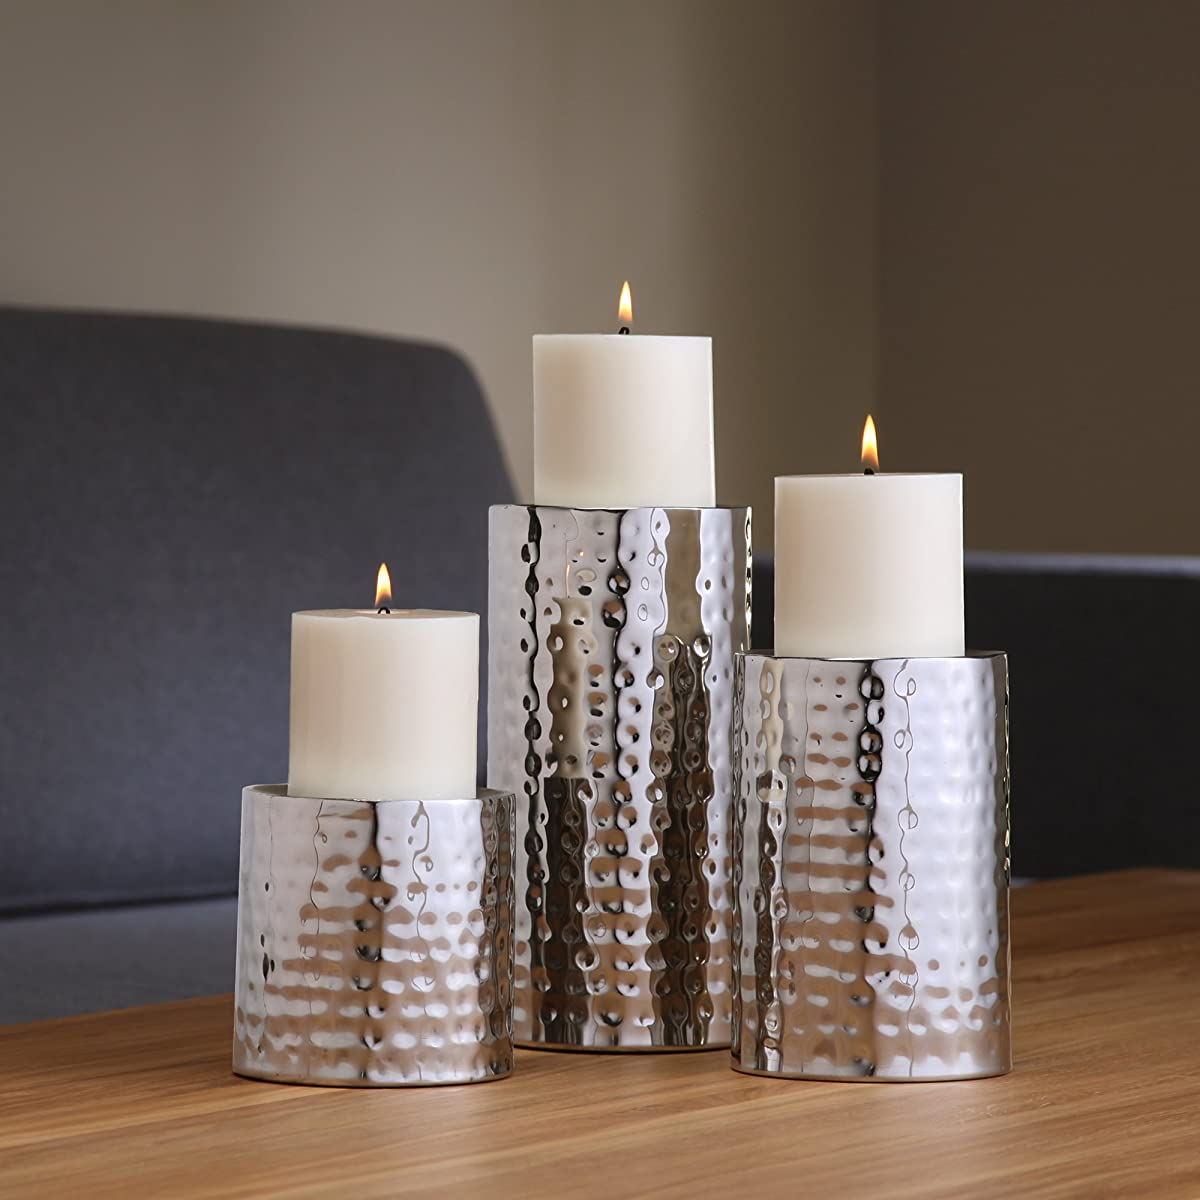 Hosley Silver Finish Pillar LED Candle Holders, Set of 3. Also usable as Vase Set of 3. Deal Gift for Wedding, Party Home, SPA, Aromatherapy, Reiki, Votive, Tea Light, Candle Garden O3